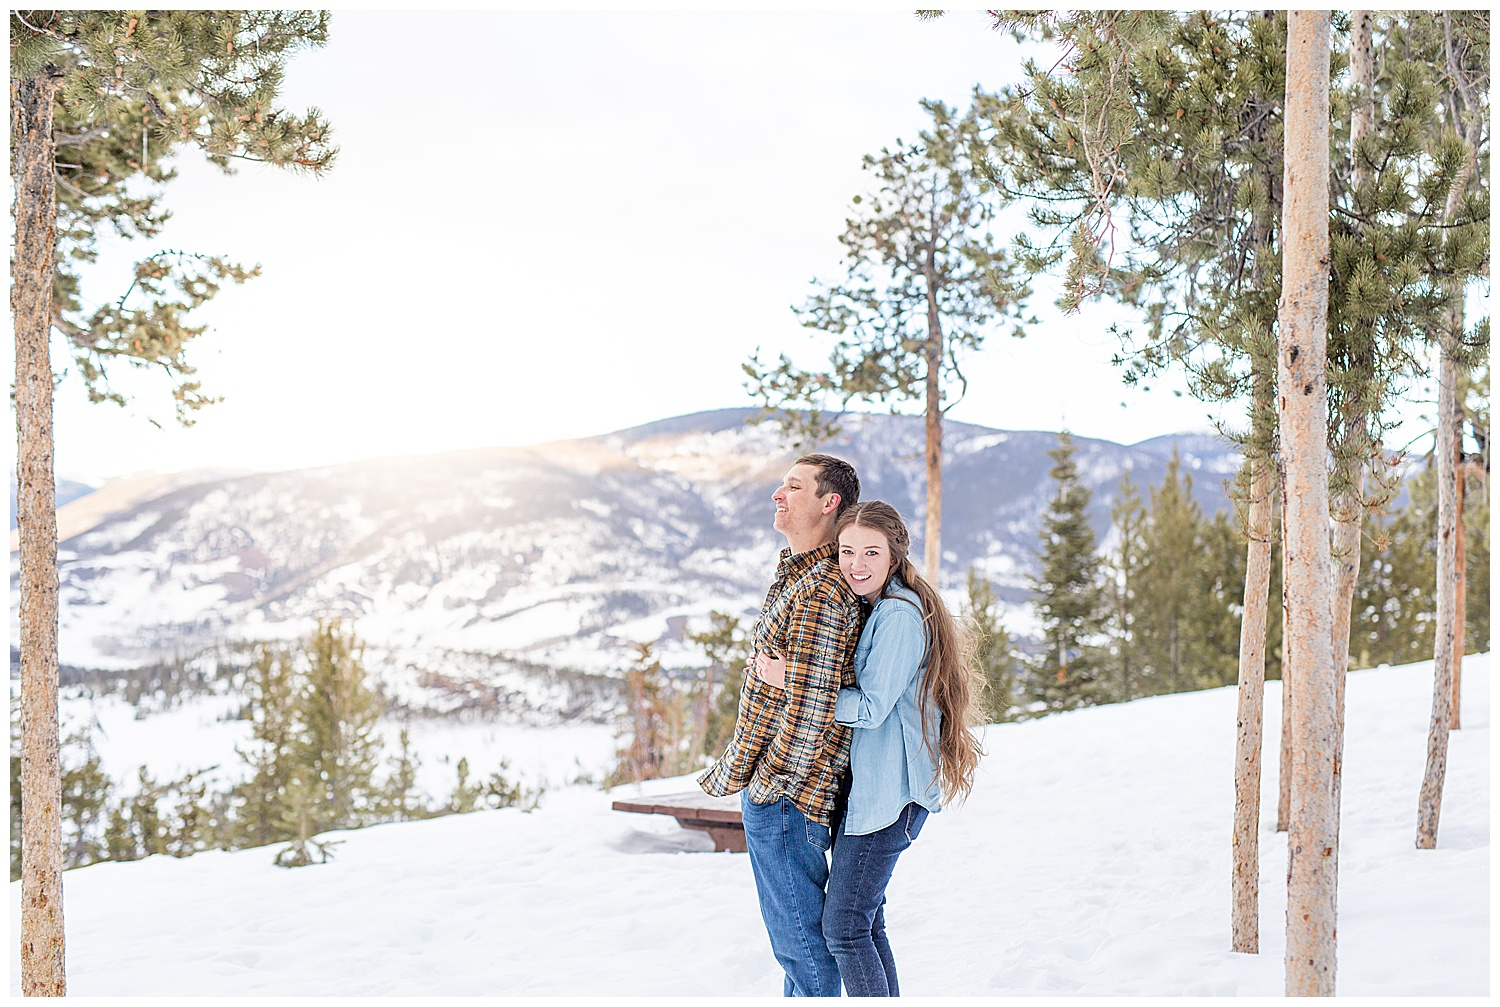 Winter-Breckenridge-Colorado-Engagement-Session_0018.jpg